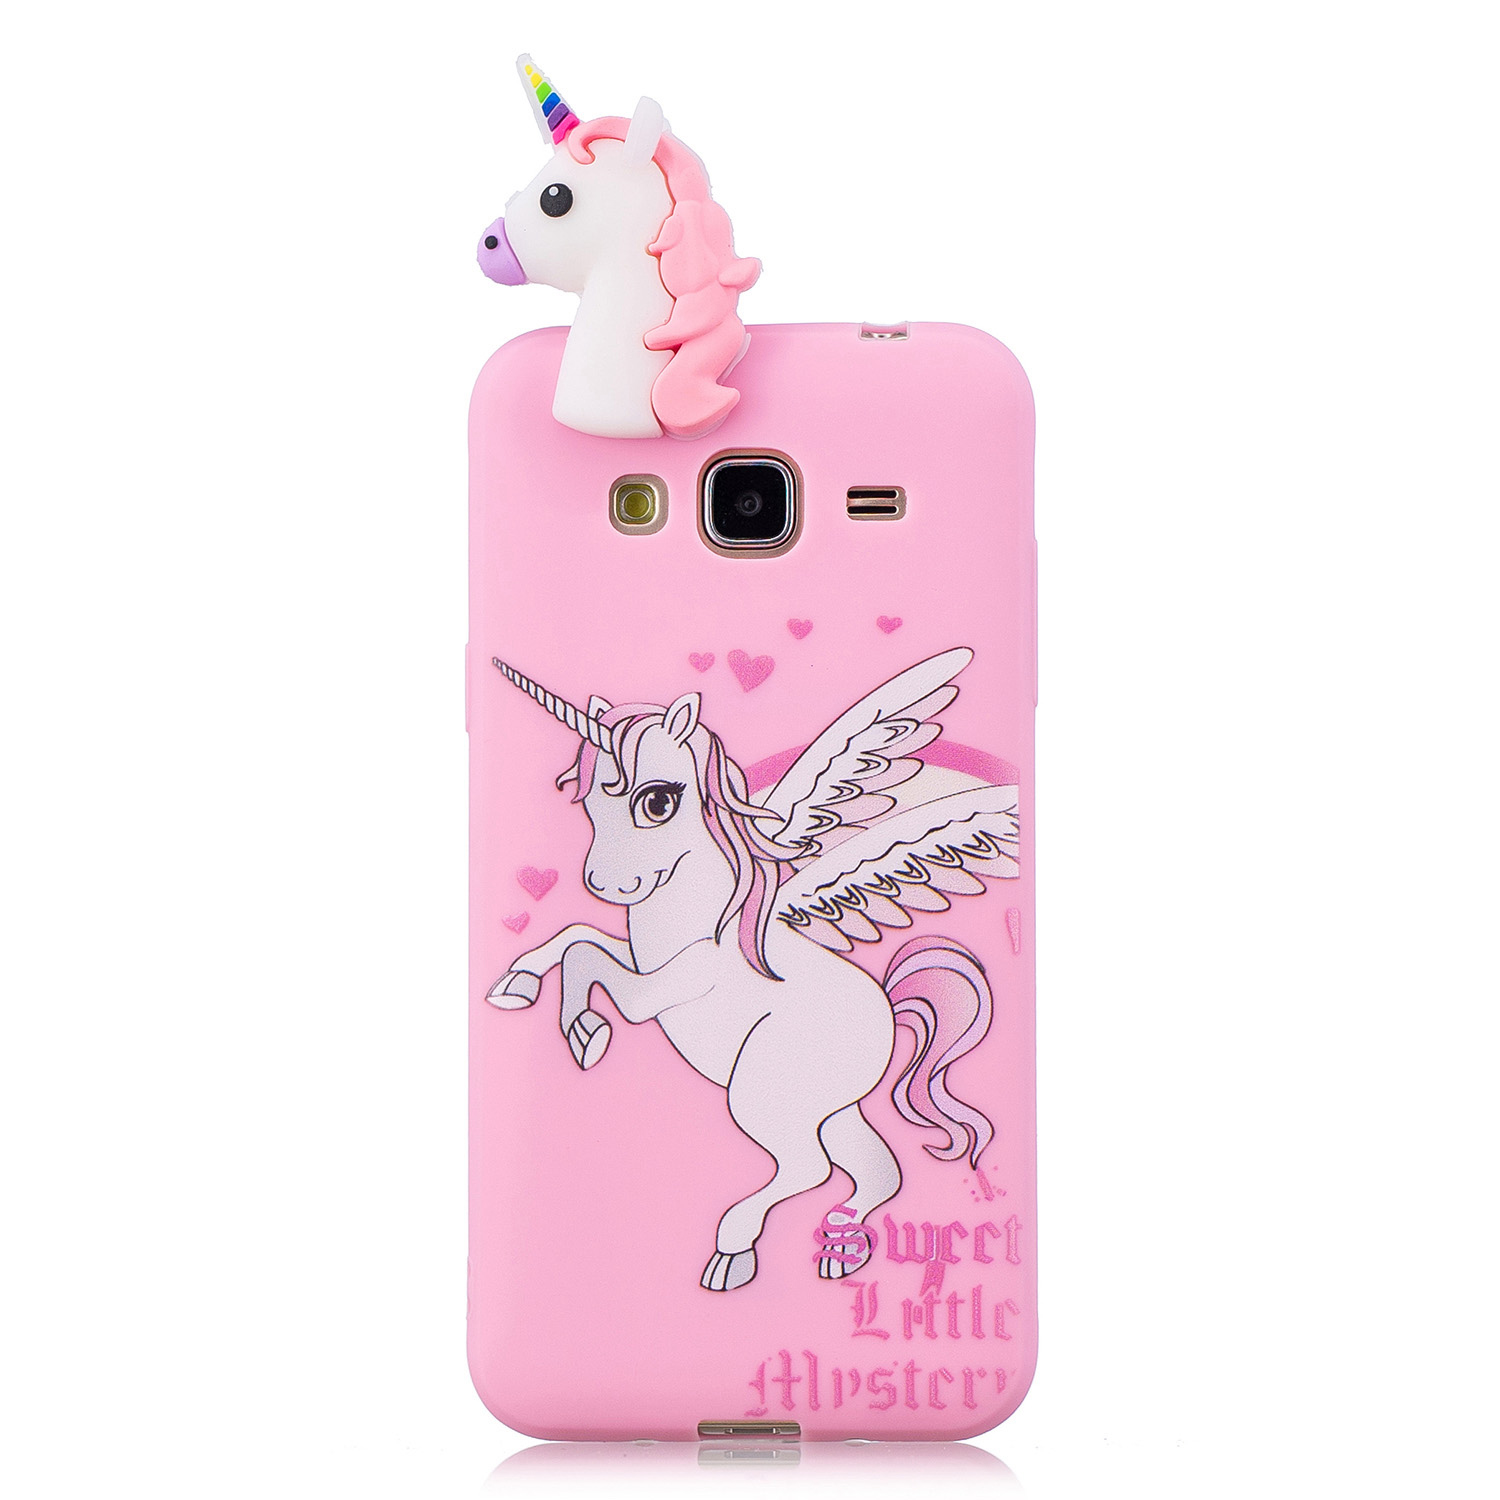 Lovely Cartoon White Squishy <font><b>Phone</b></font> <font><b>Cases</b></font> for samsung <font><b>galaxy</b></font> <font><b>j3</b></font> 2016 <font><b>Case</b></font> Cute Smiling Cloud Soft Silicone stress relief Cover